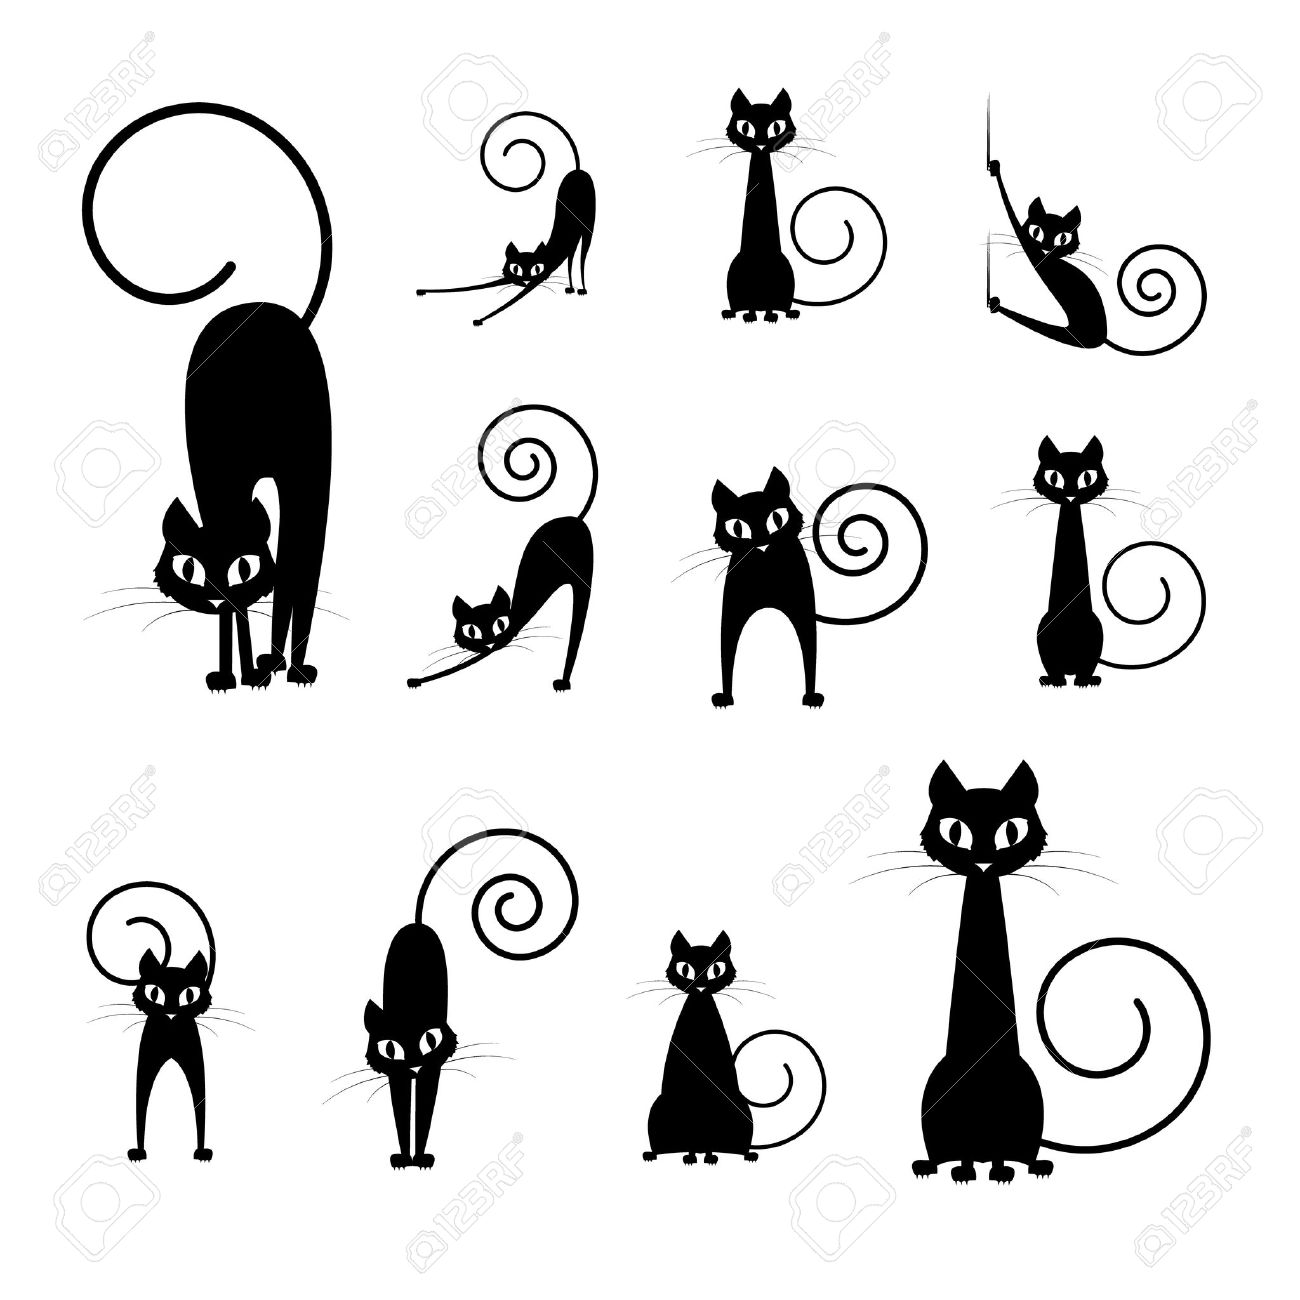 black cat silhouette collections cartoon cat black and white halloween stock vector 48064653 - Black Cat Silhouette Halloween